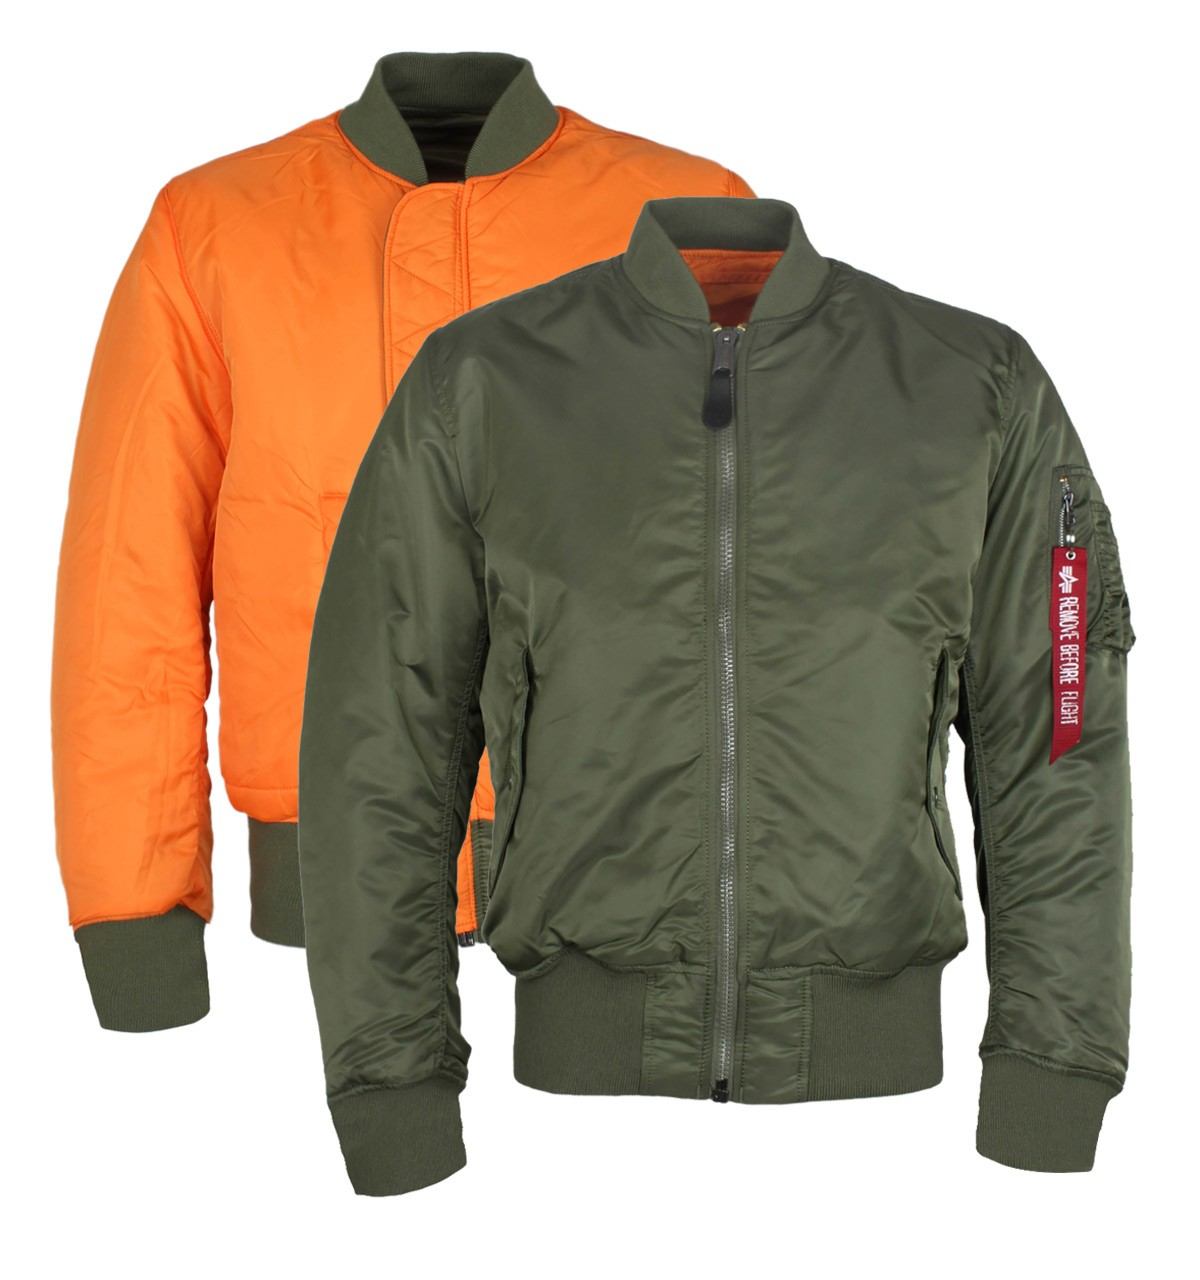 MA-1 Khaki Green & Orange Reversible Original Flight Jacket